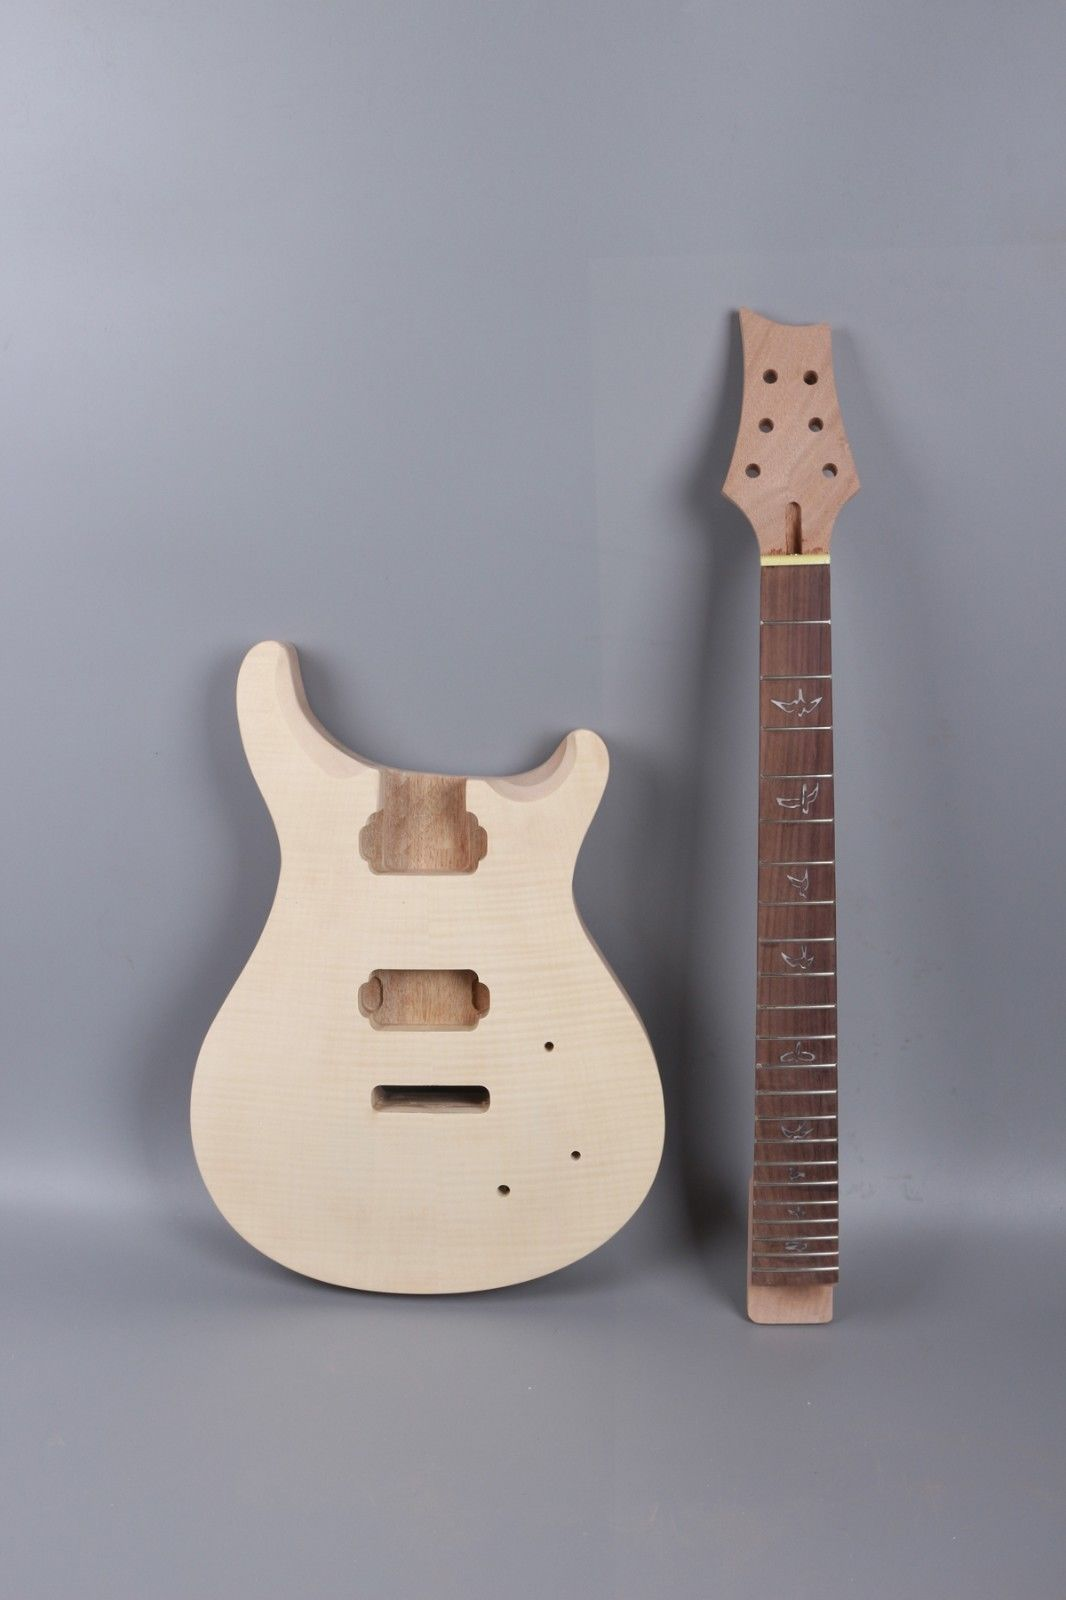 new electric guitar body guitar neck guitar parts 22 fret inch diy guitar in guitar parts. Black Bedroom Furniture Sets. Home Design Ideas